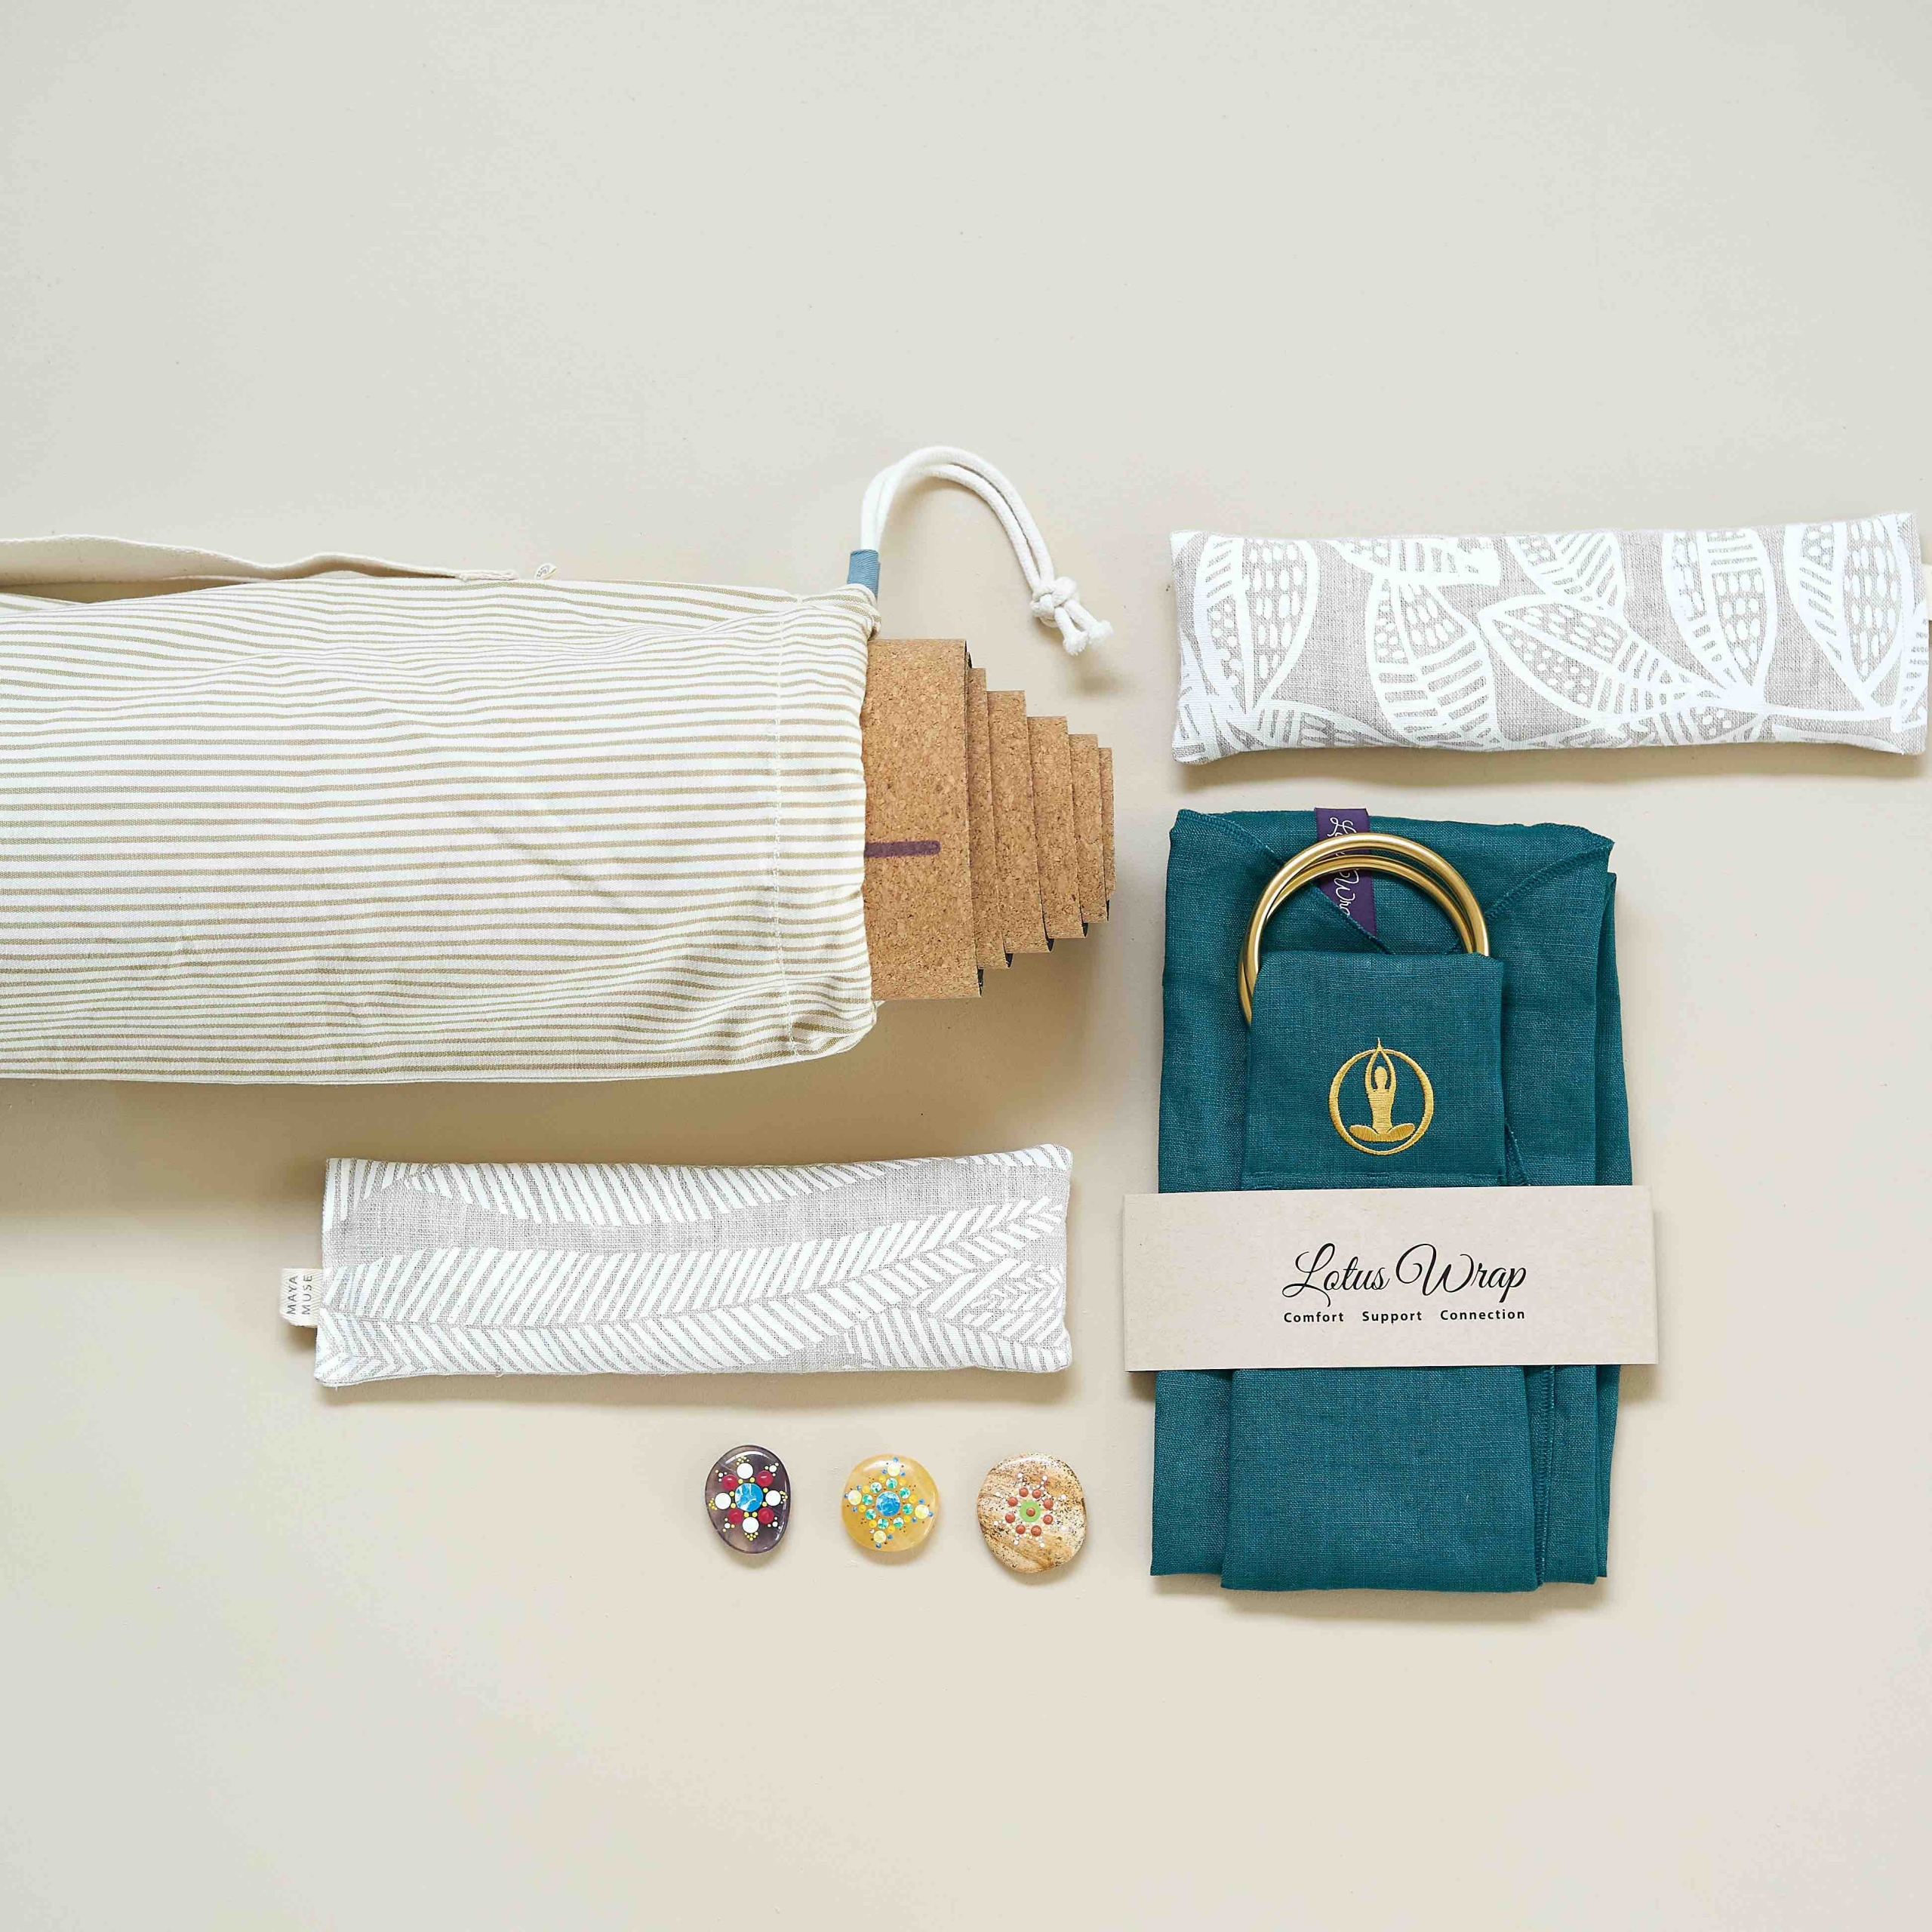 Yoga mat poking out of mat bag surrounded by an eye pillow, lotus meditation support wrap and shavasana stones